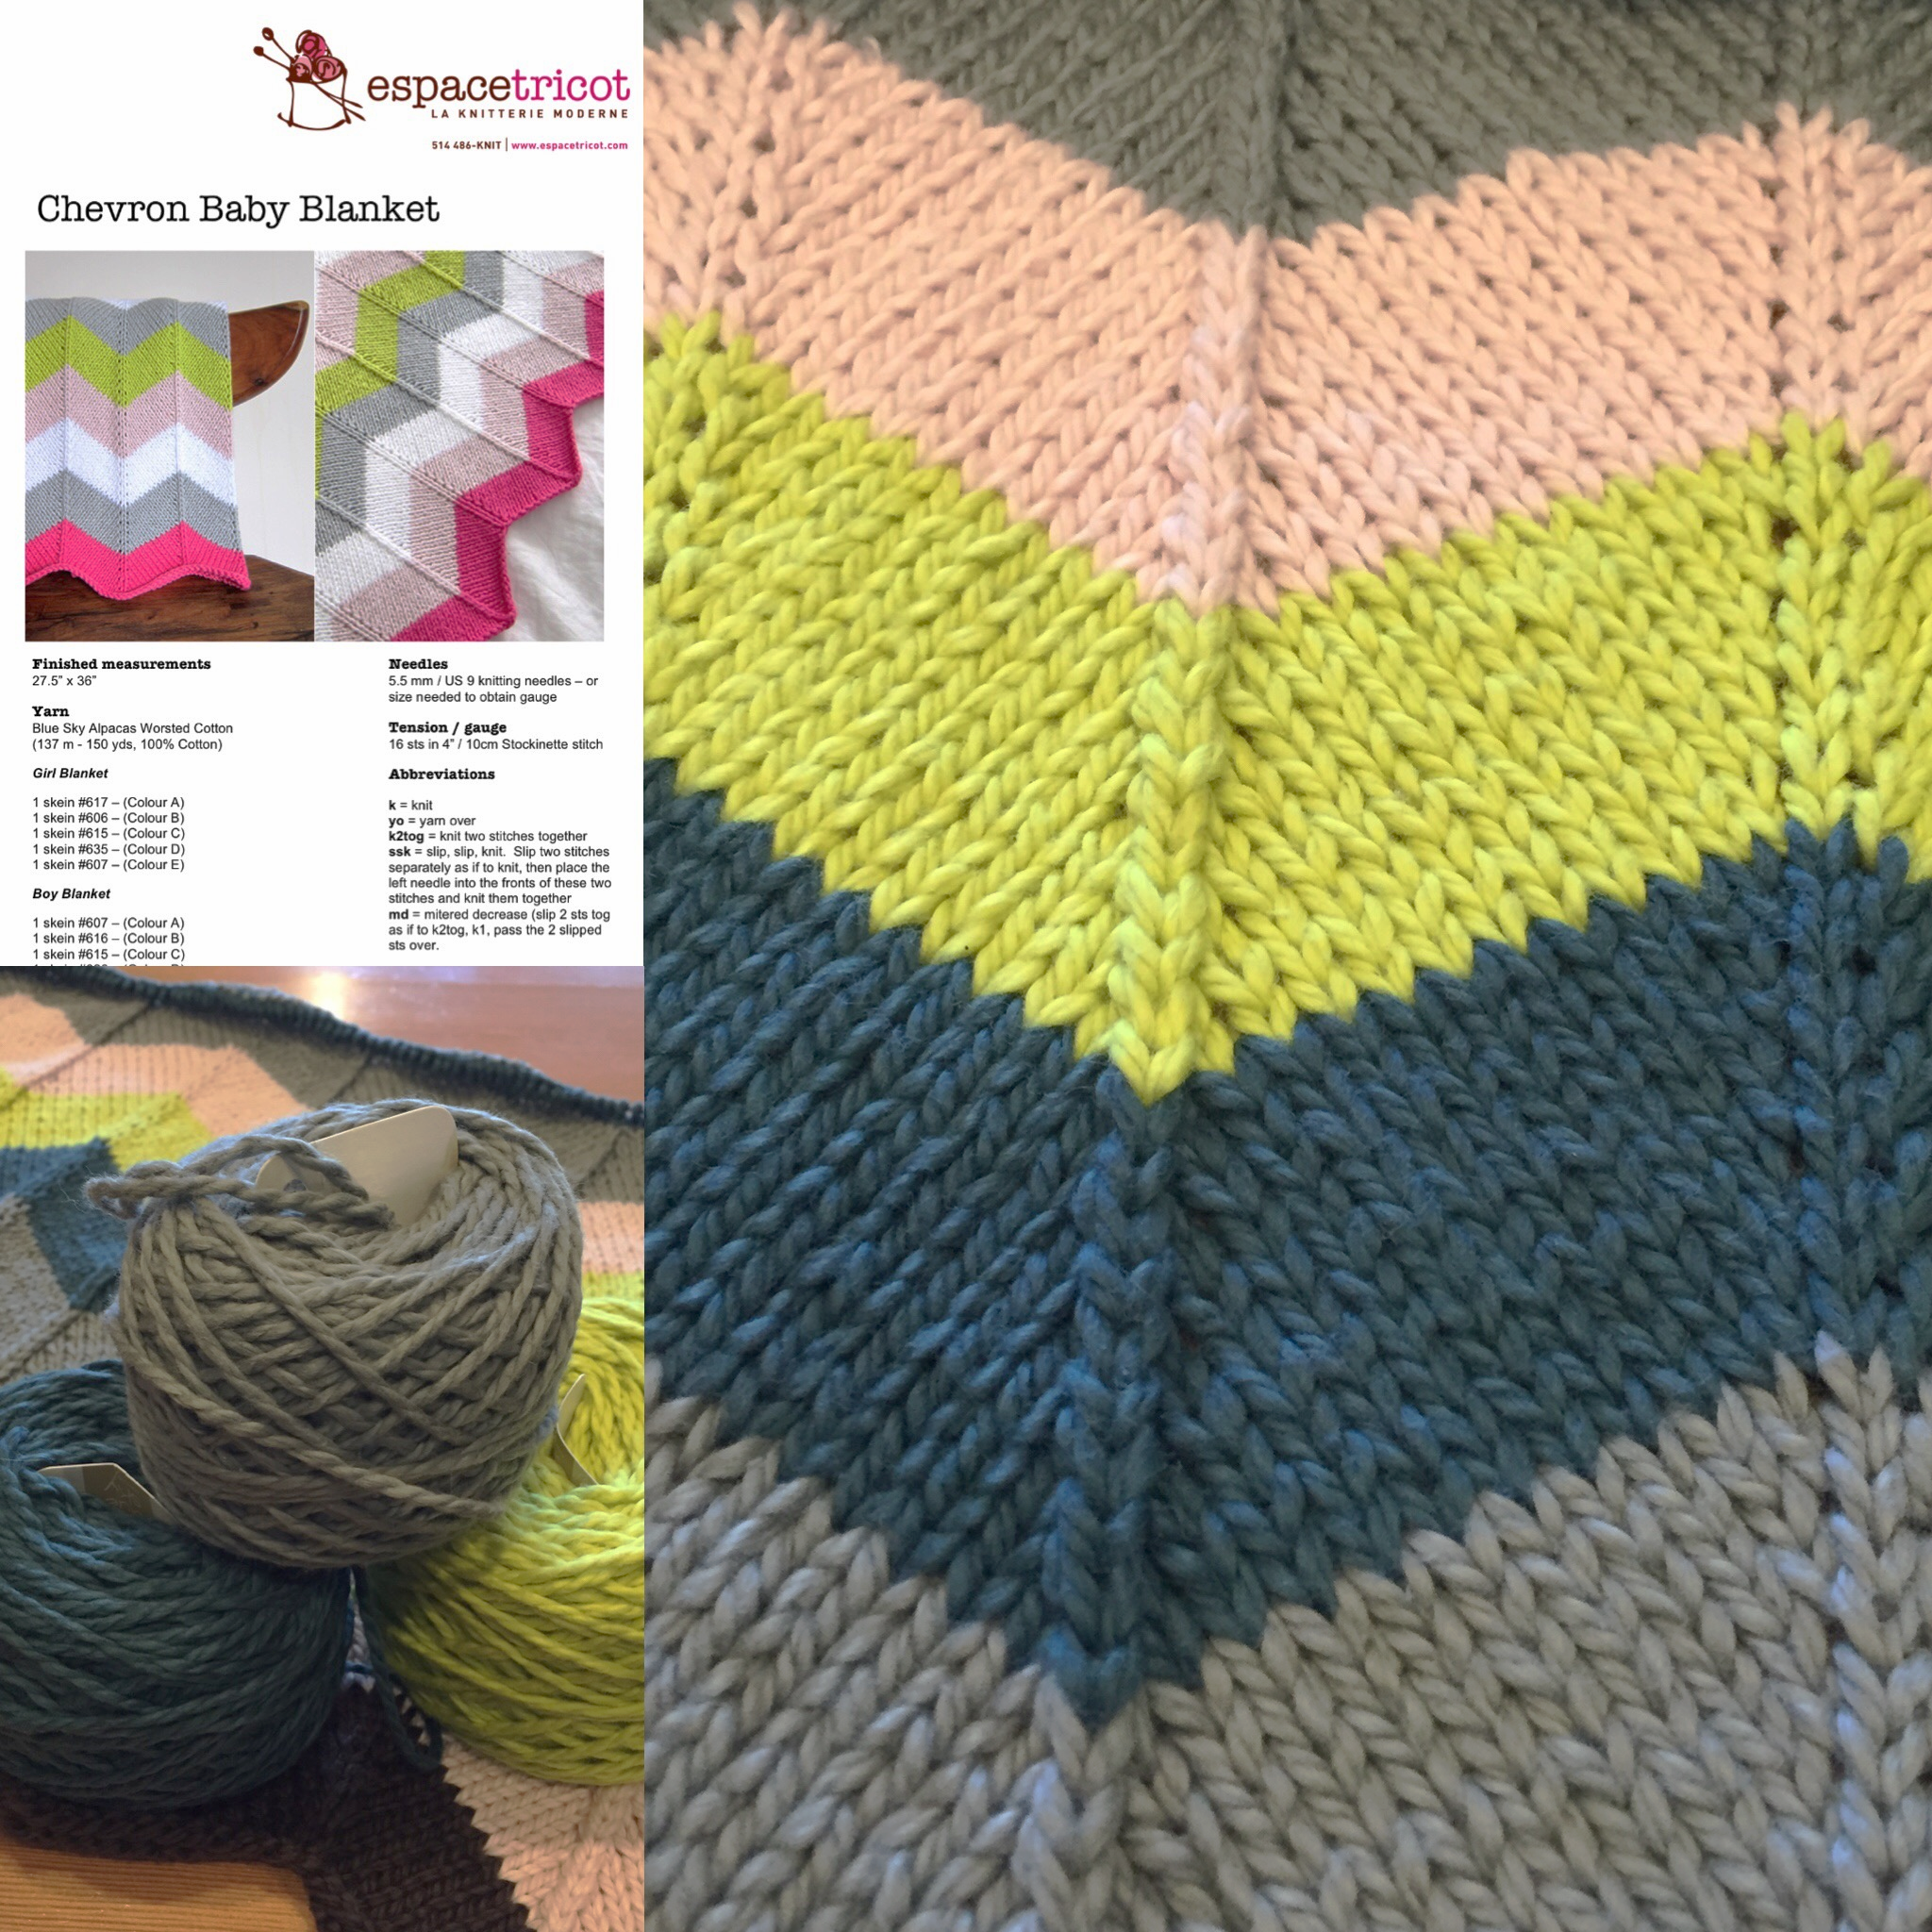 Melissa's Version of A Classic Baby Blanket Pattern